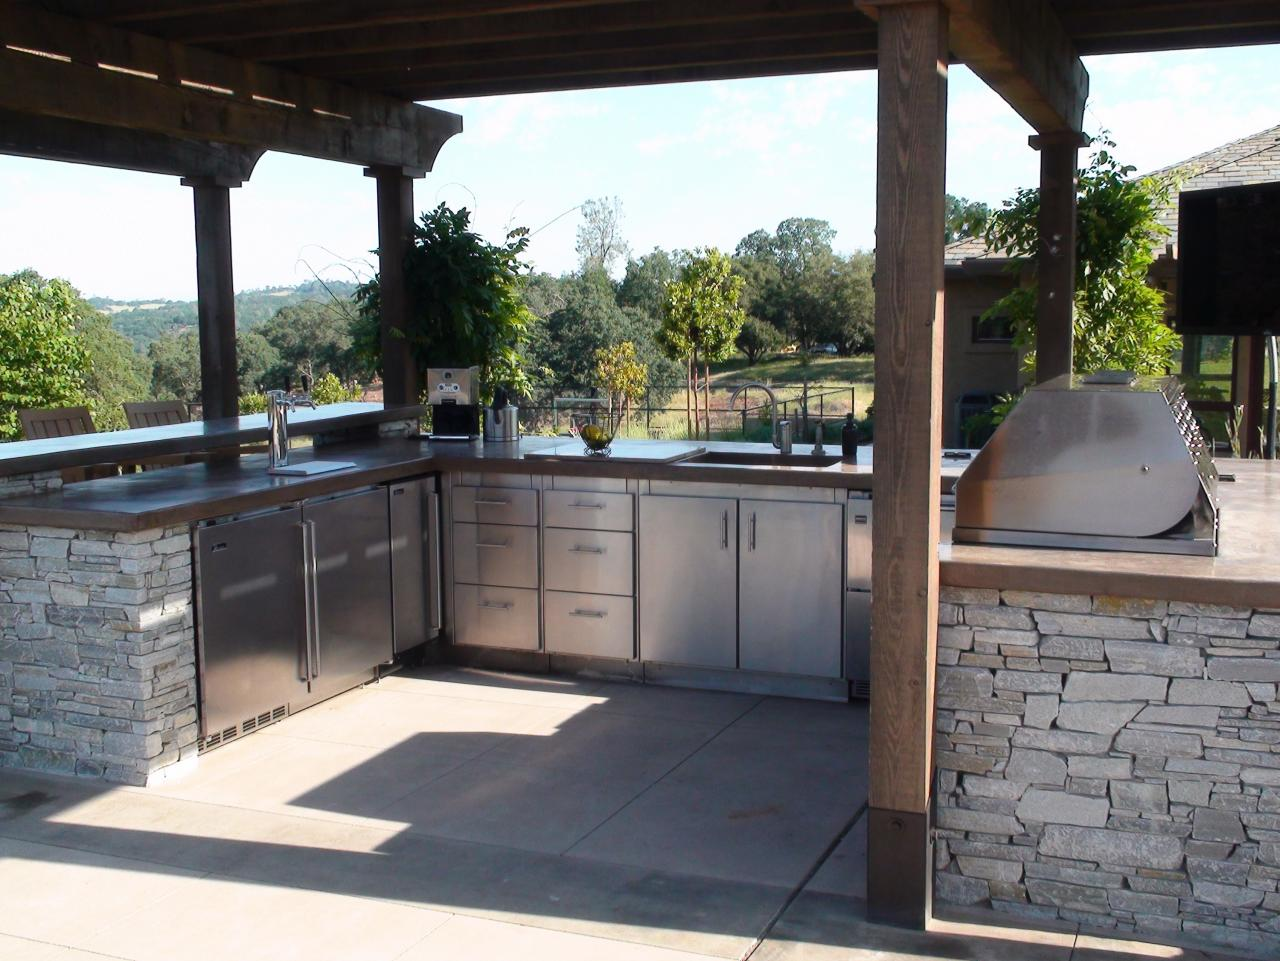 optimizing an outdoor kitchen layout | hgtv